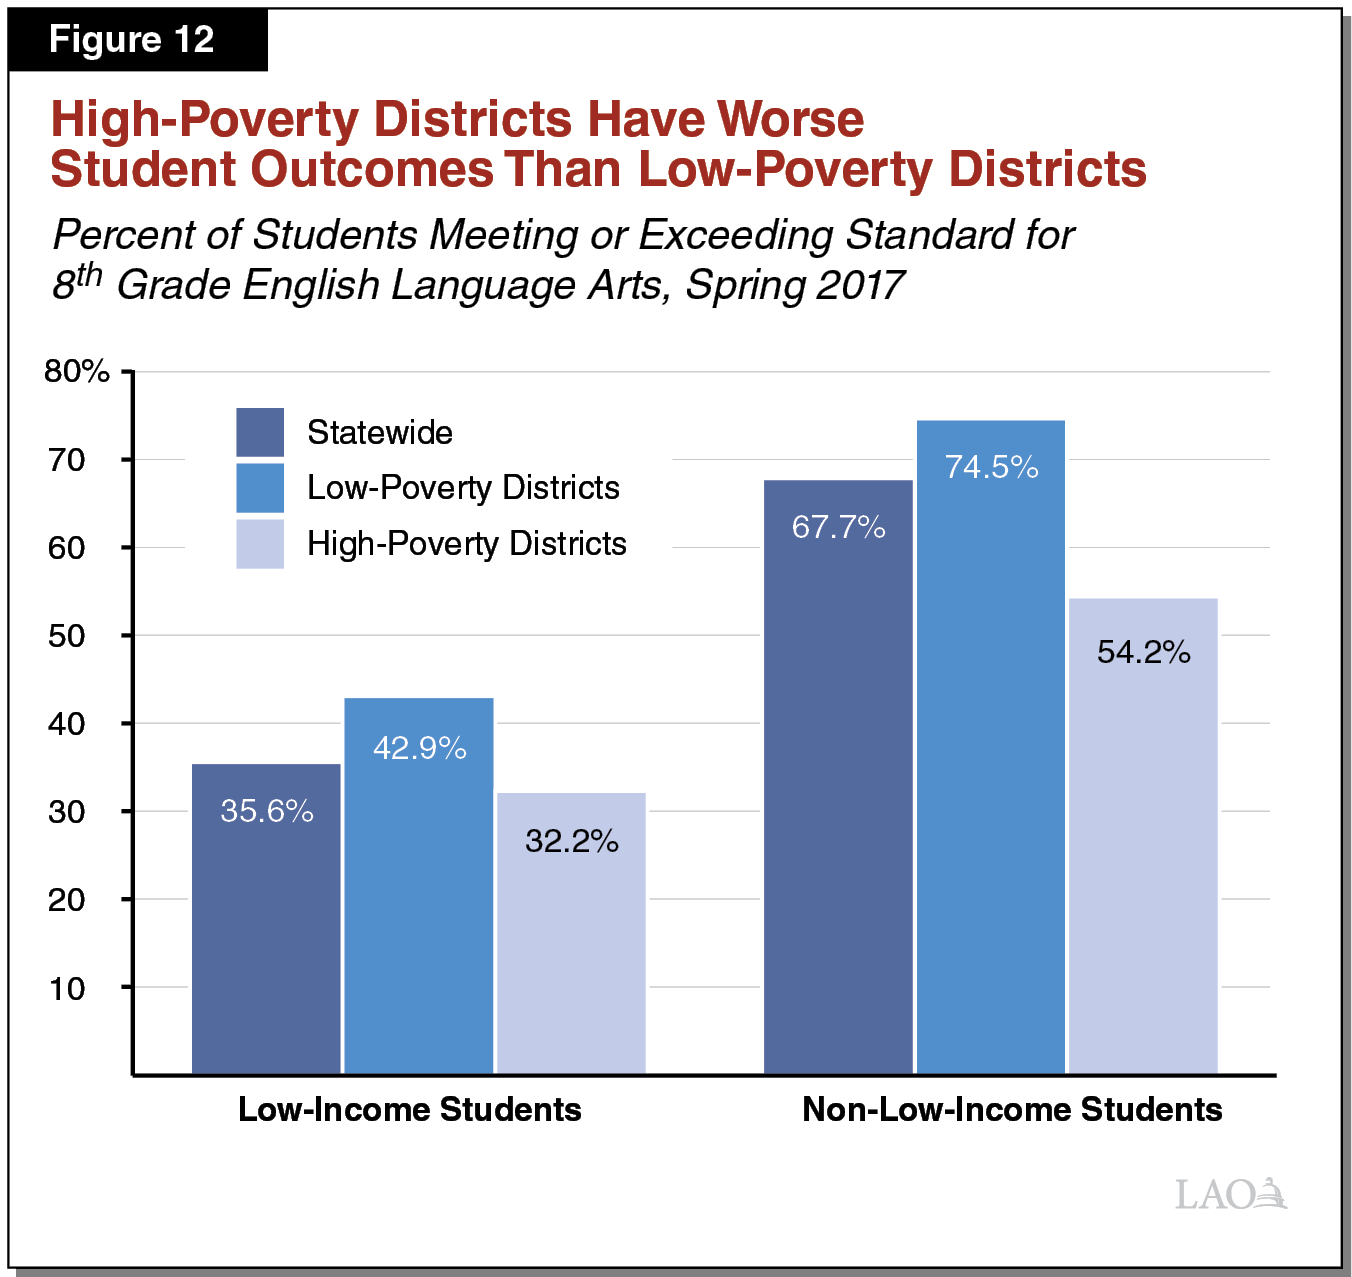 Figure 12 - High-Poverty Districts Have Worse Student Outcomes Than Low-Poverty Districts